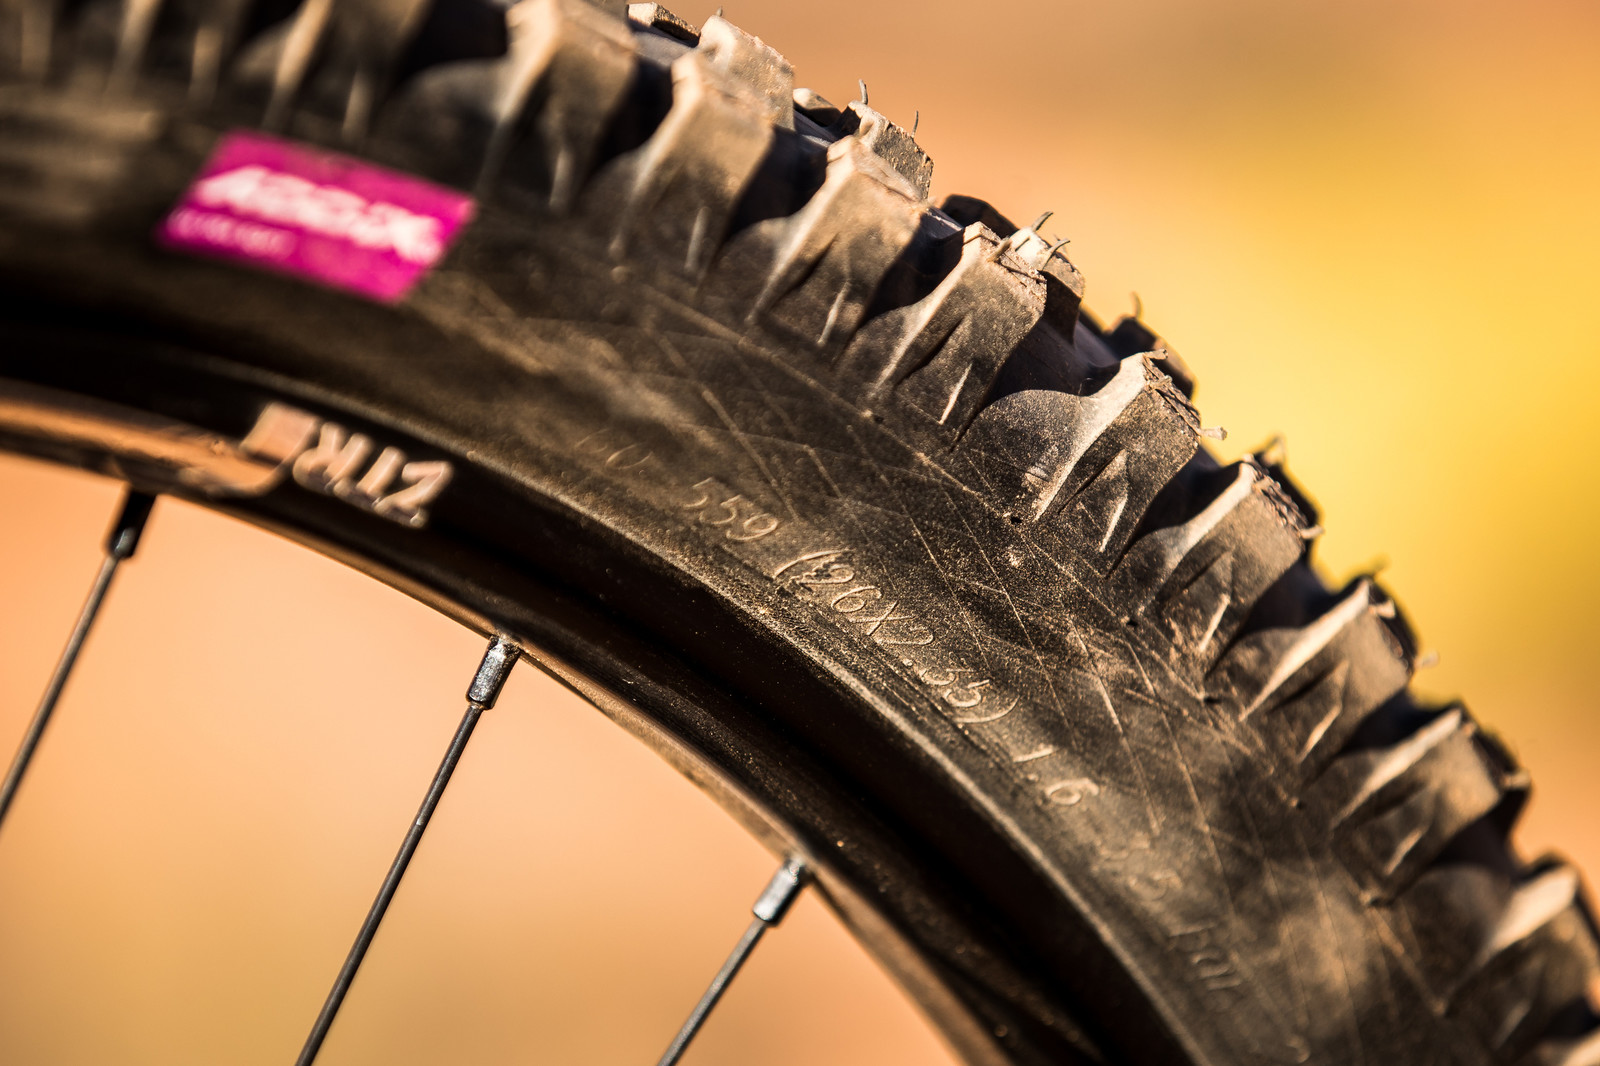 Schwalbe Tires on Kurt Sorge's Polygon XQuarone DH9 at Rampage 2019 - RAMPAGE BIKE - Kurt Sorge's Polygon XQuarone DH9 - Mountain Biking Pictures - Vital MTB